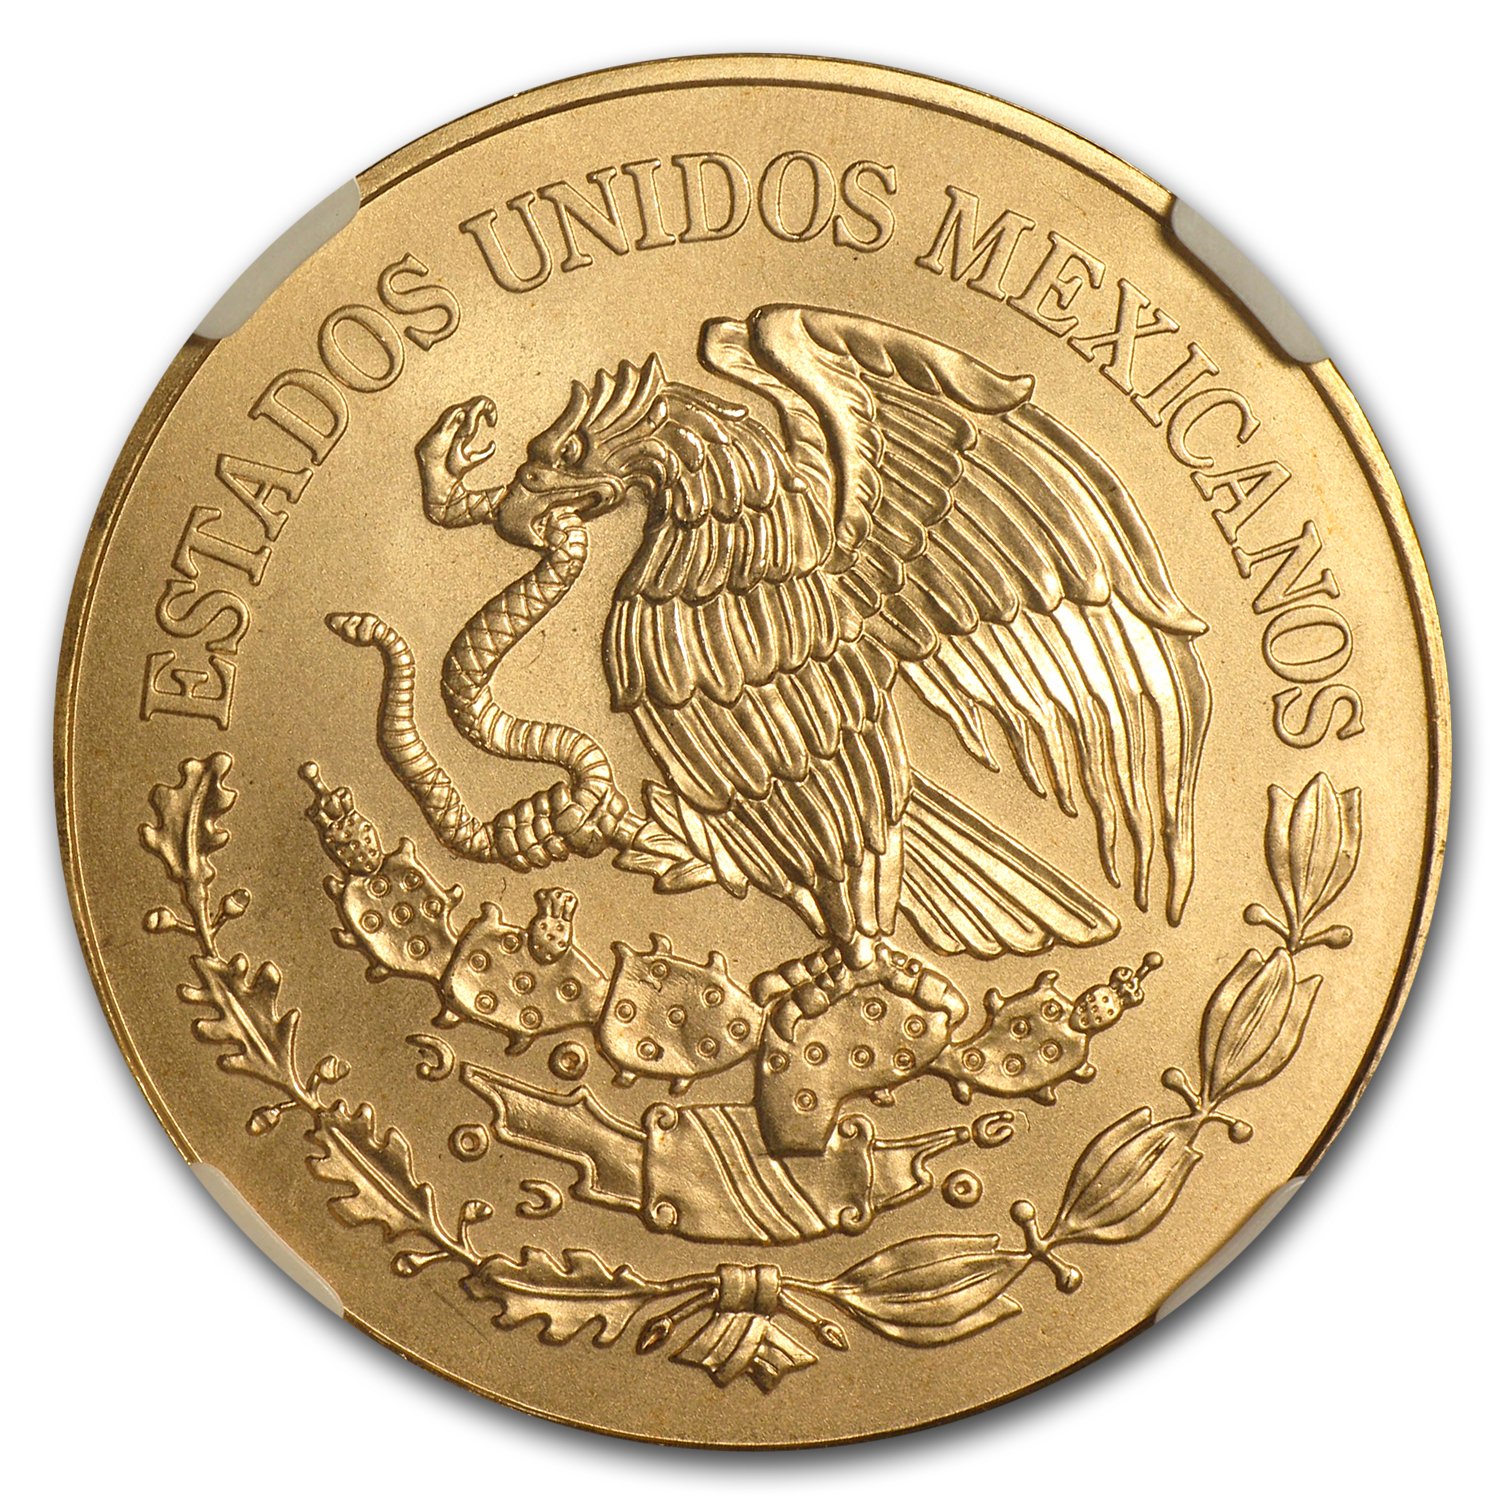 2010 Mexico Gold 200 Pesos Bicentenary Commemorative MS-70 NGC